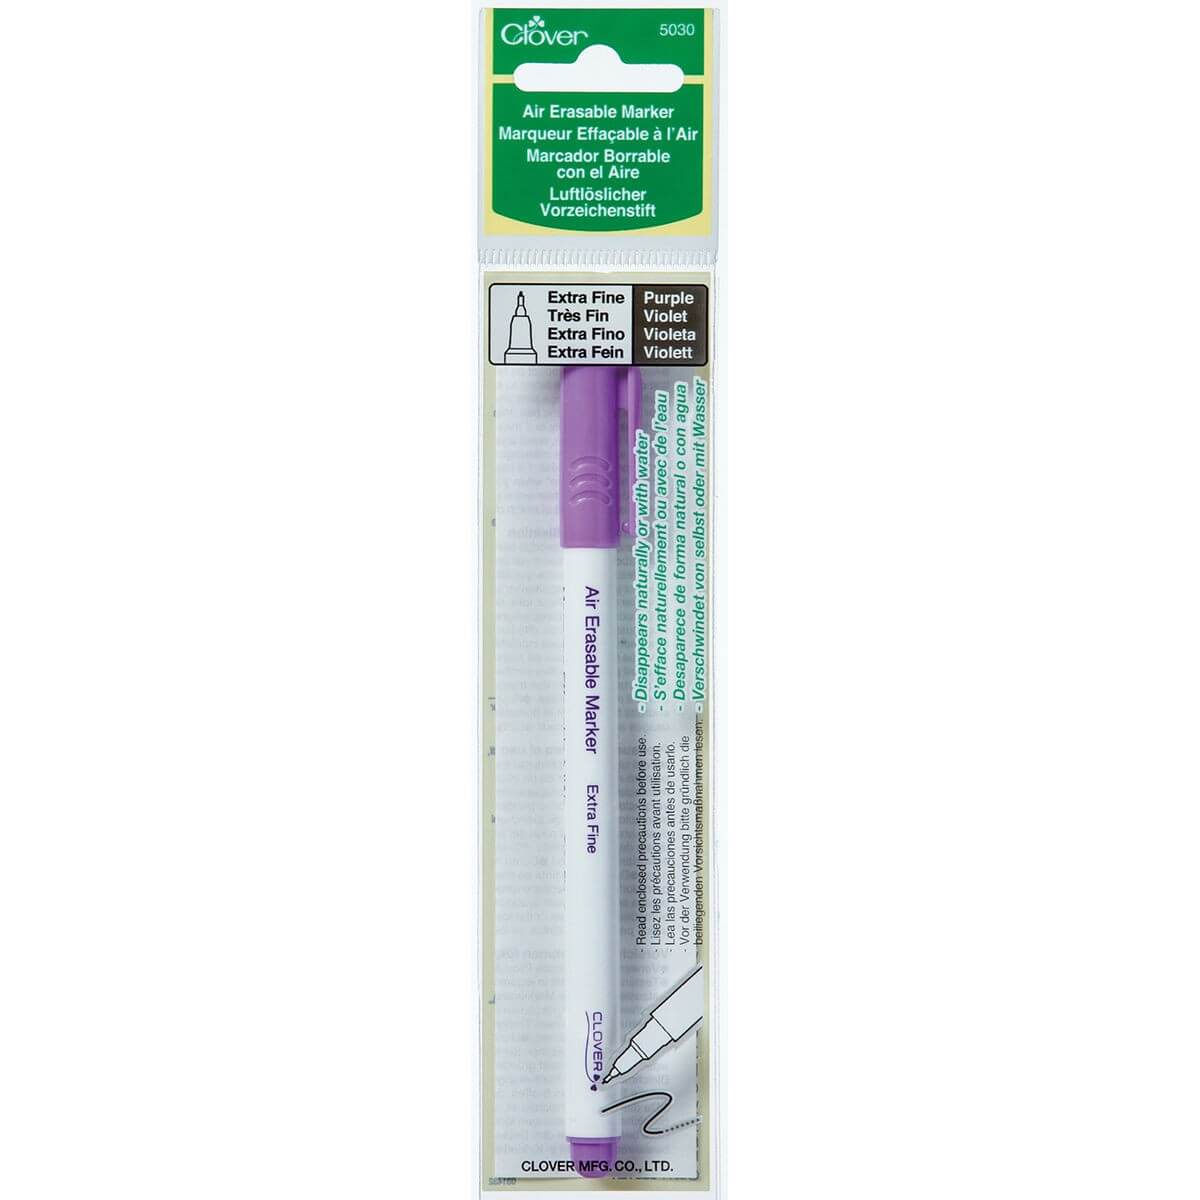 Clover Air Erasable Marker - Extra Fine - Purple